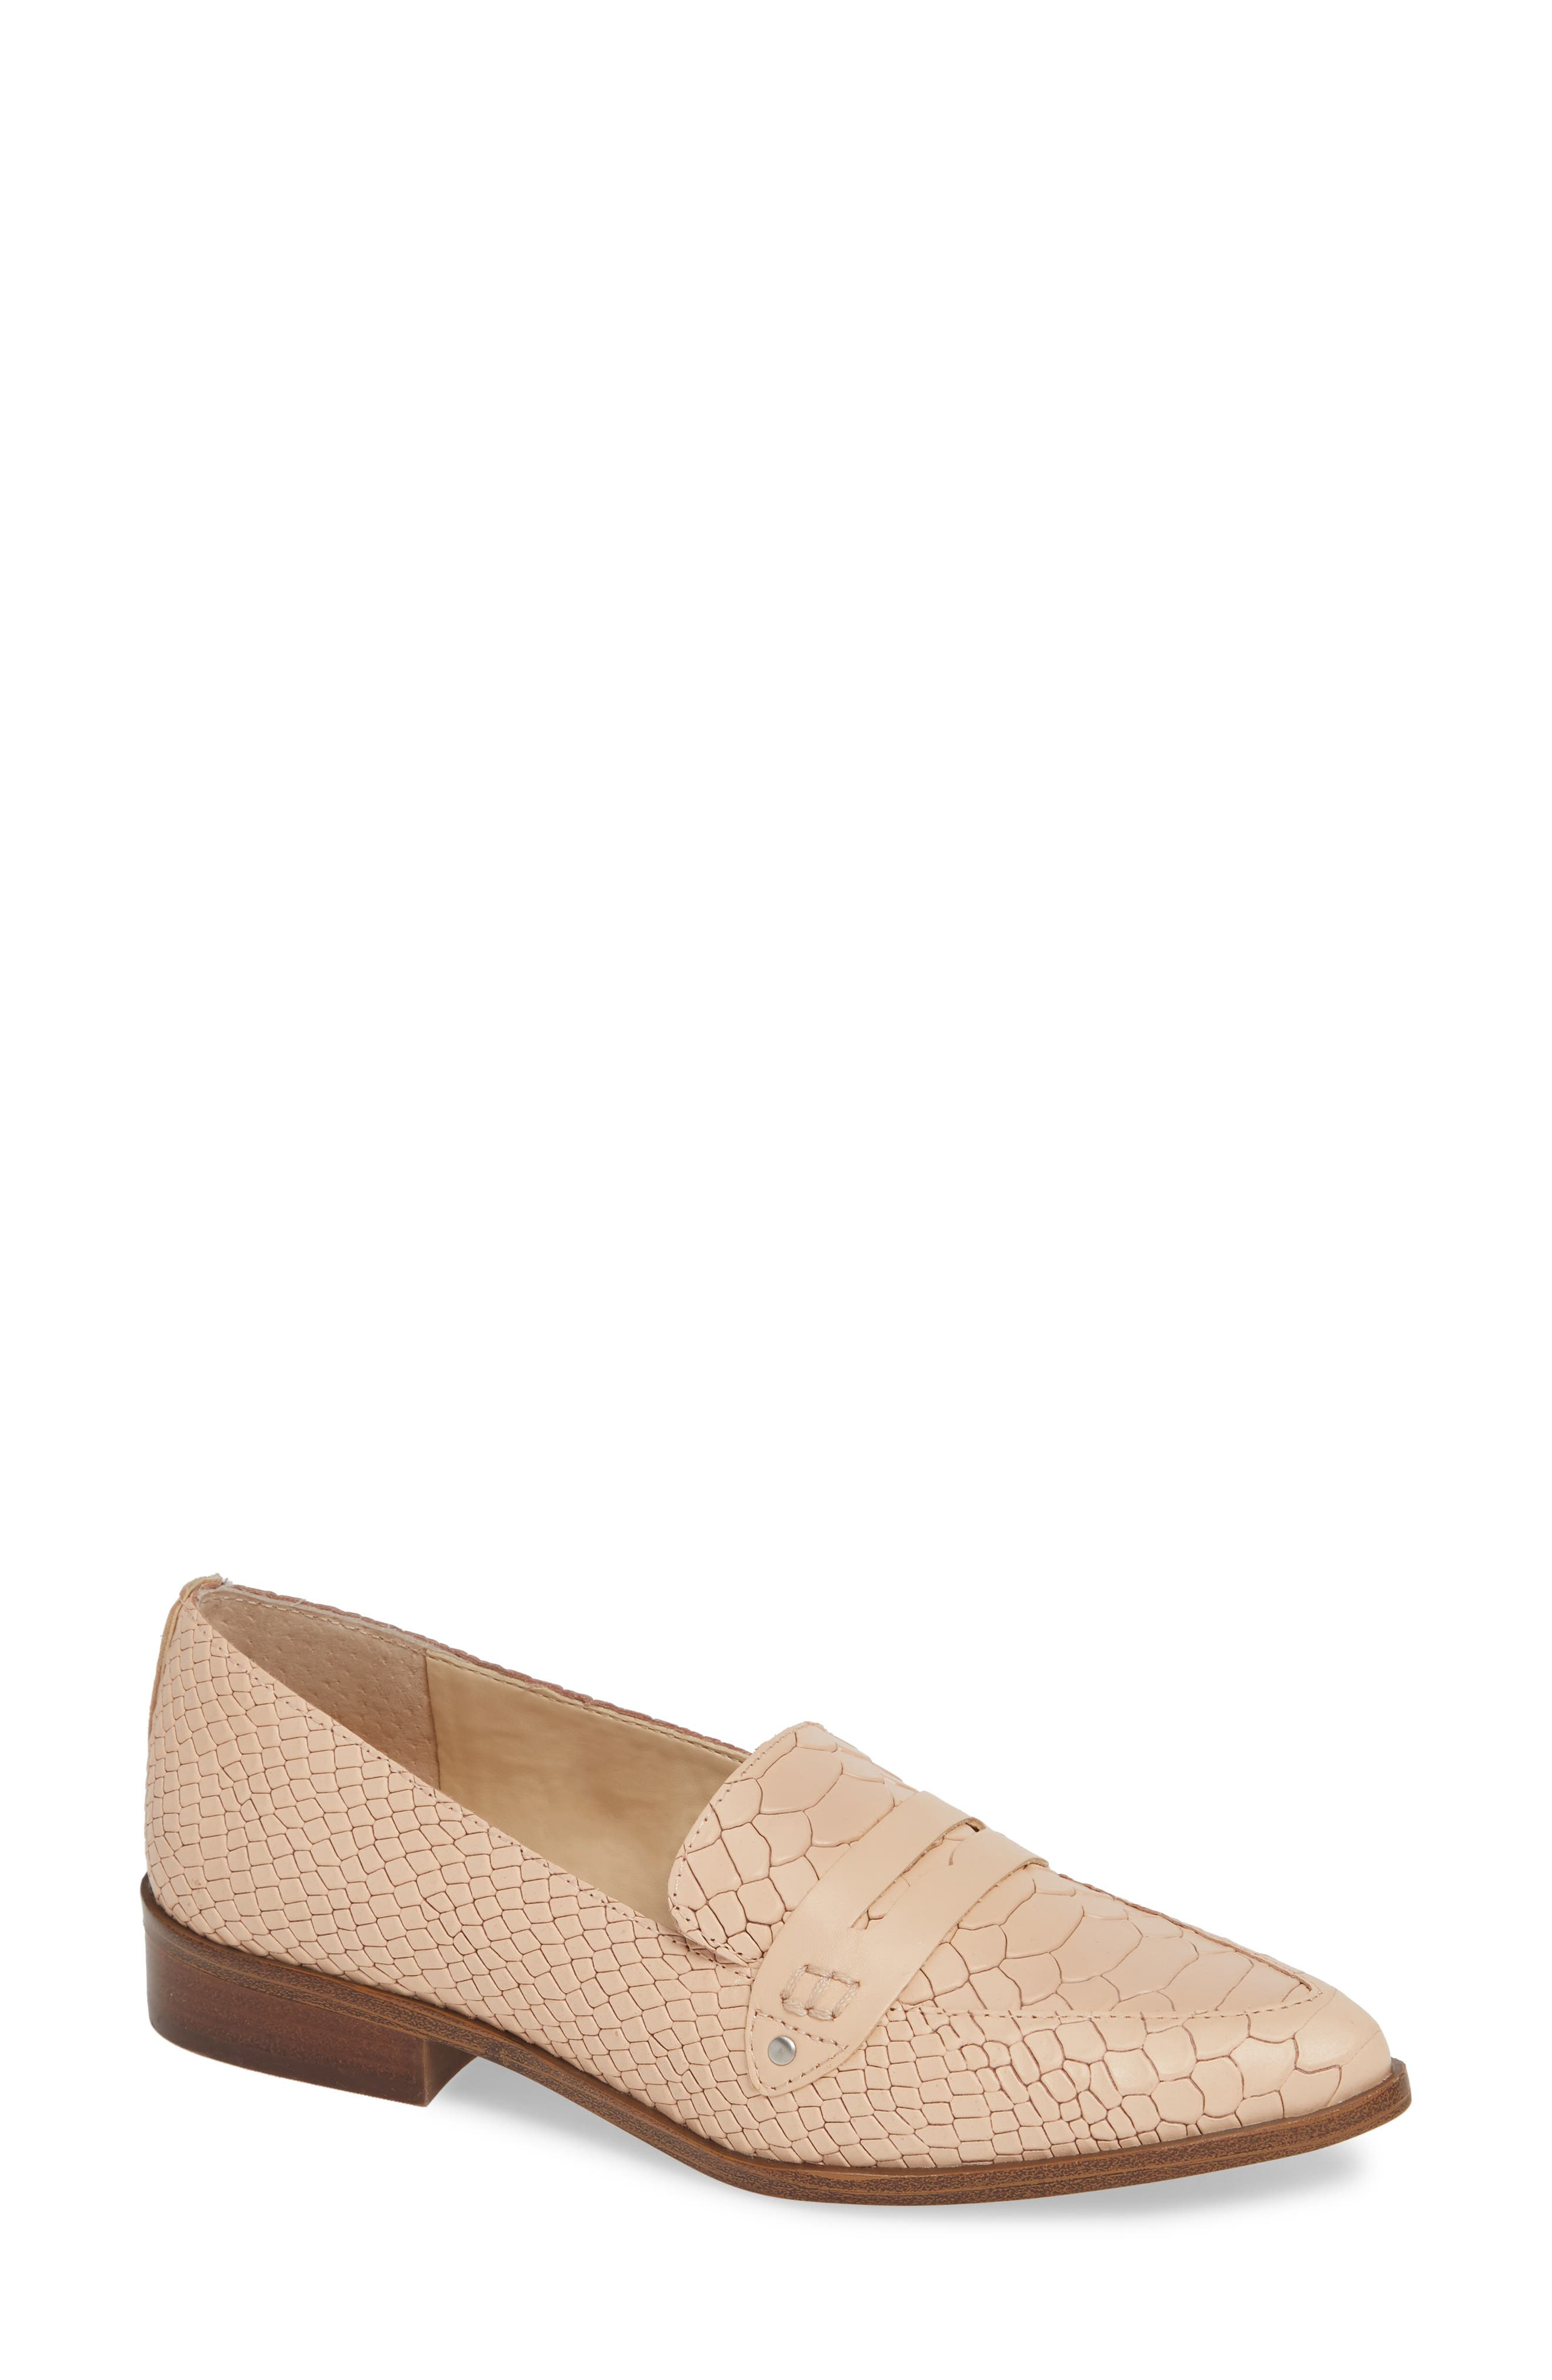 SOLE SOCIETY, Jessica Smoking Slipper, Main thumbnail 1, color, BISQUE LEATHER